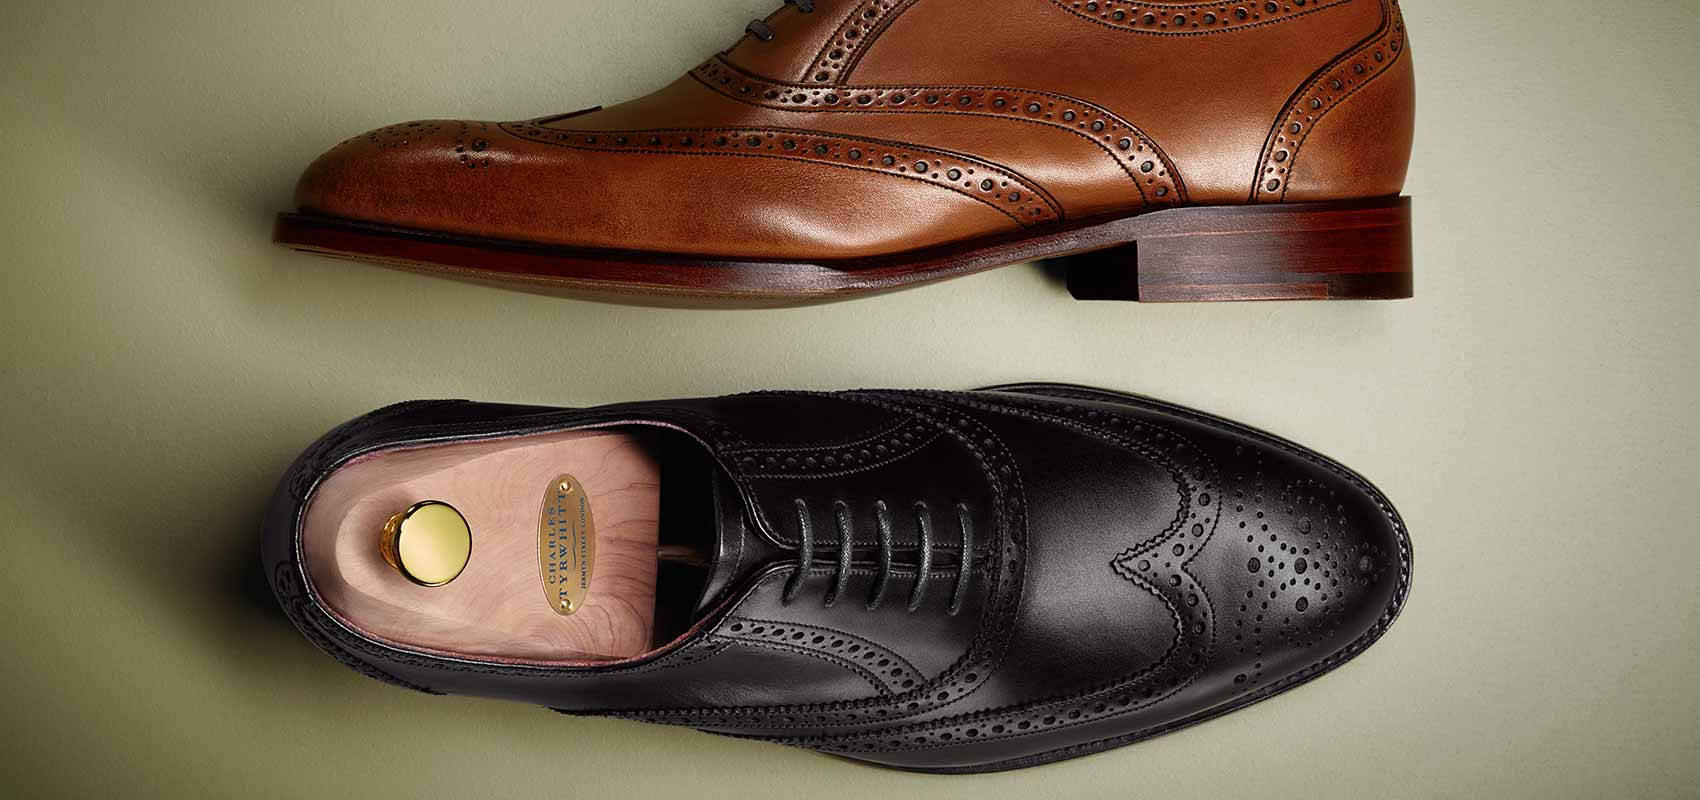 Charles Tyrwhitt Chaussures Made in England